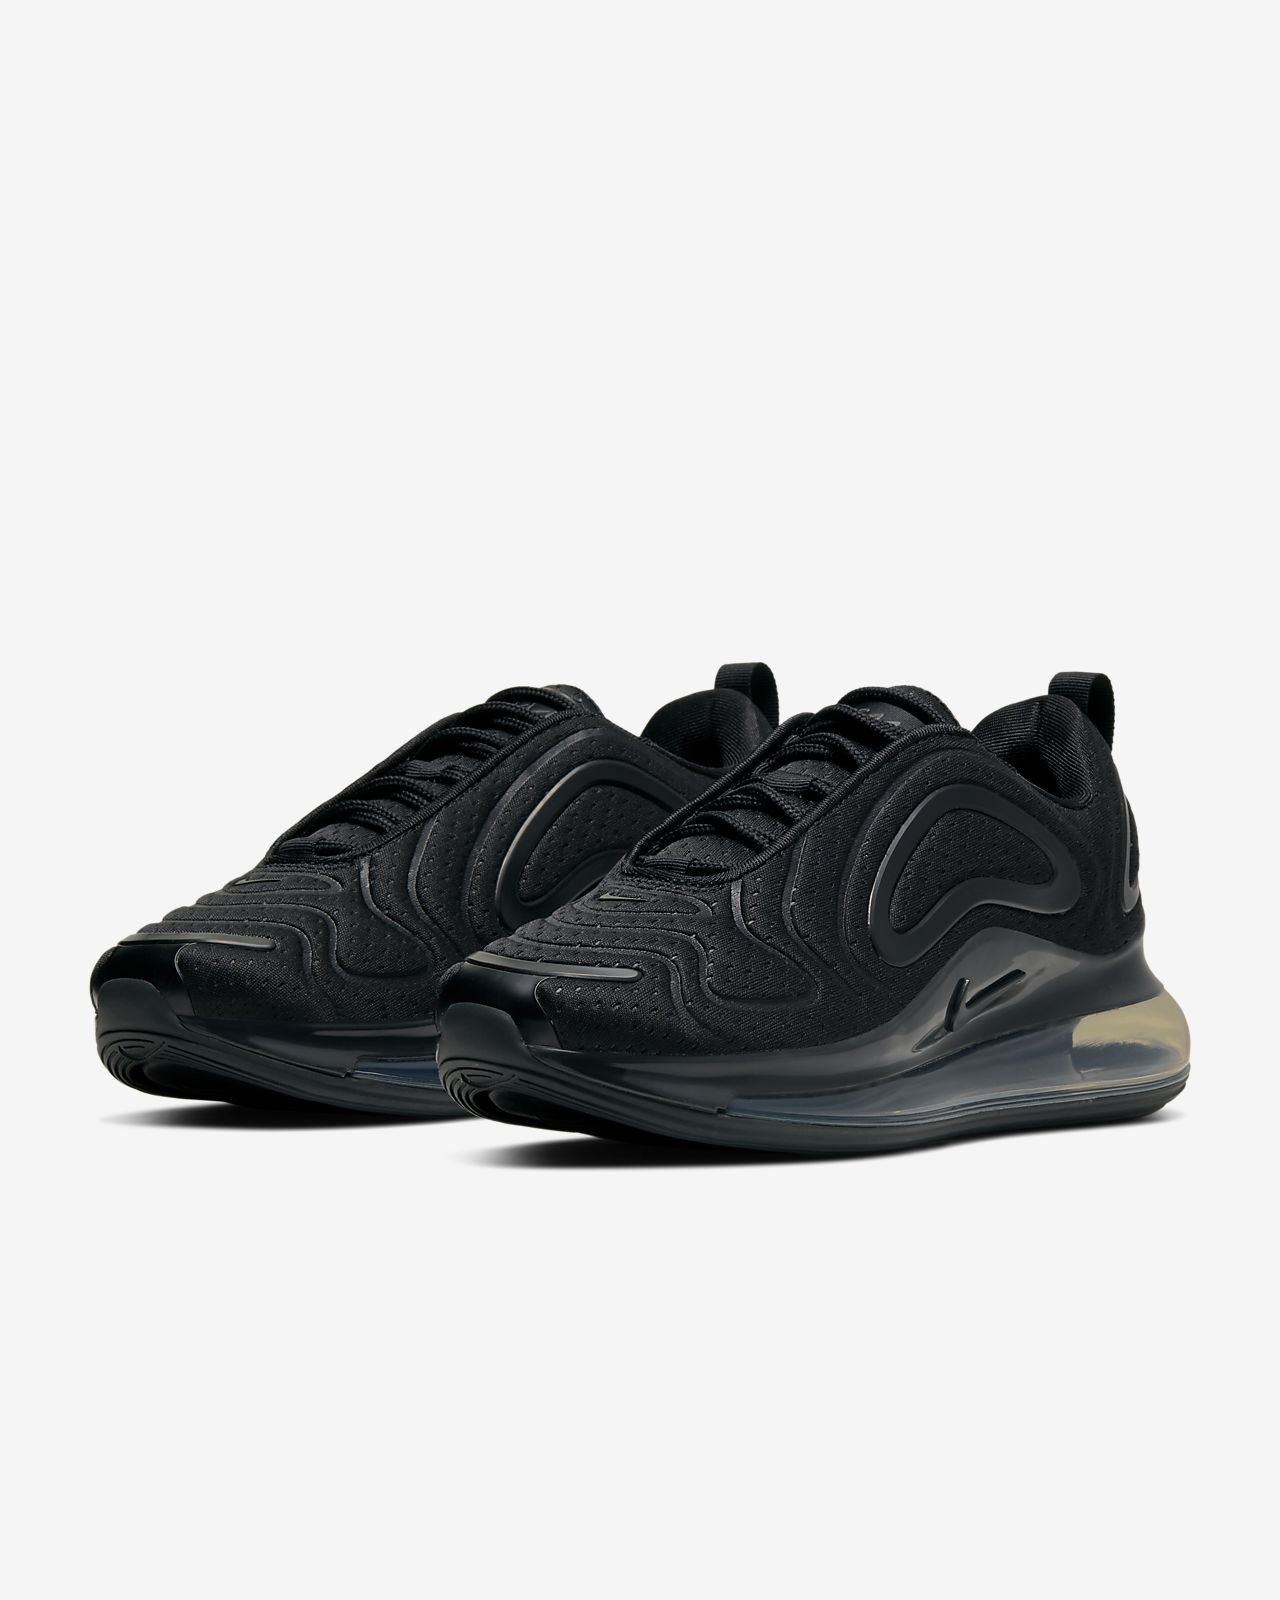 NIKE Air Max 720 Future Pack Sneaker bei SNIPES bestellen